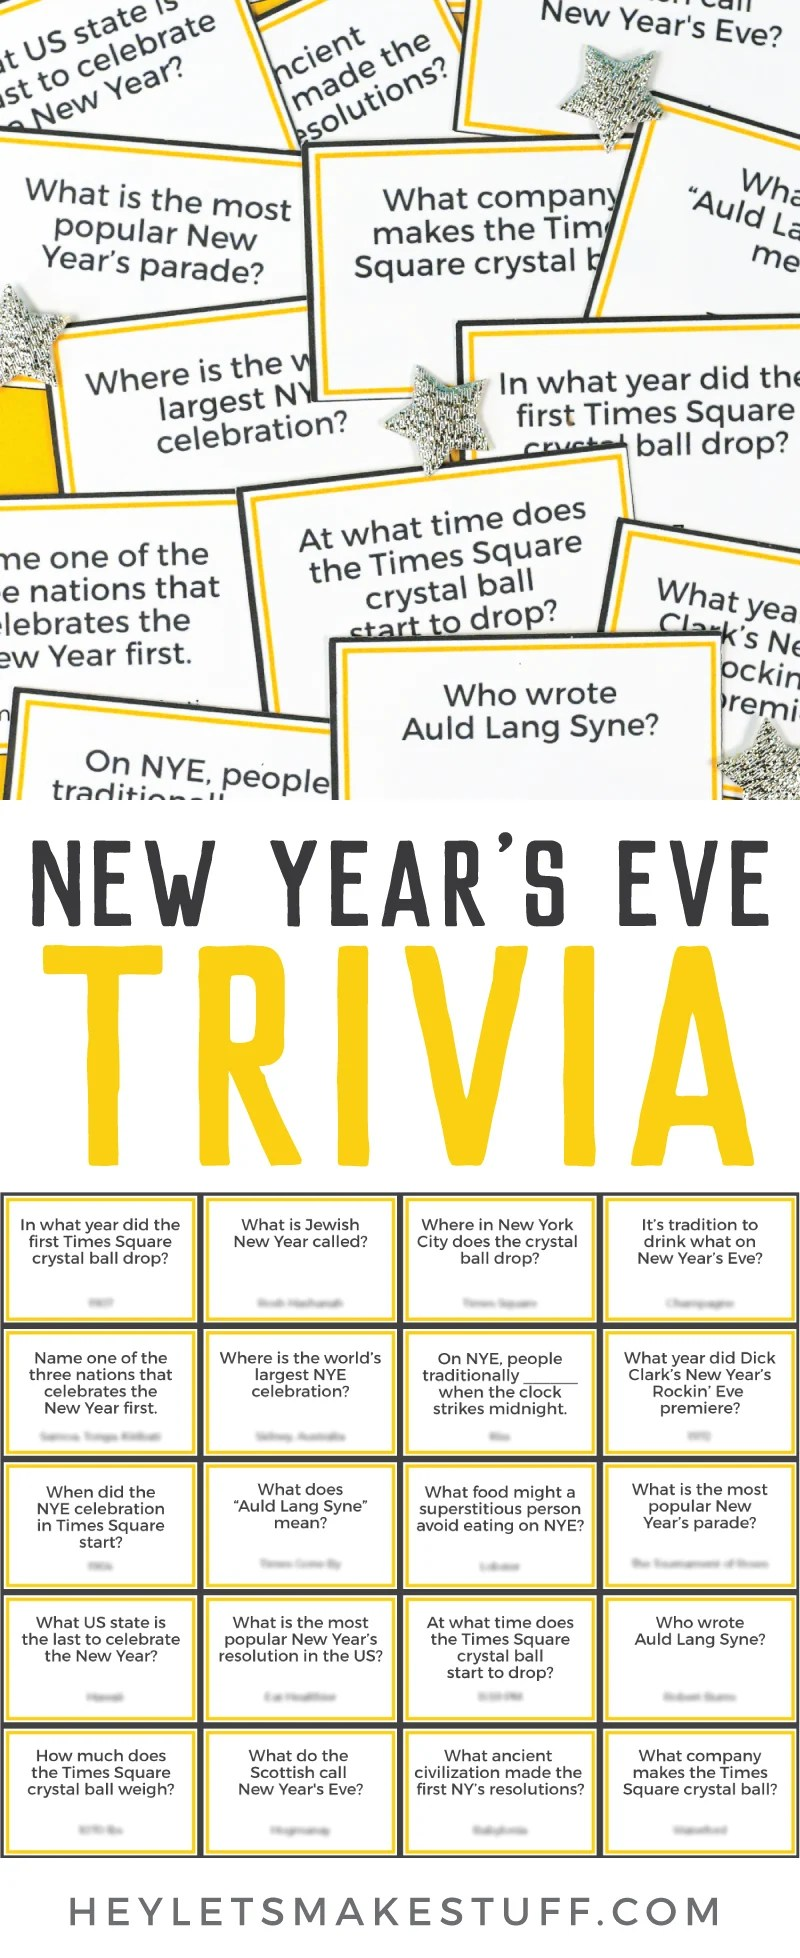 New Year's Eve Trivia pin image